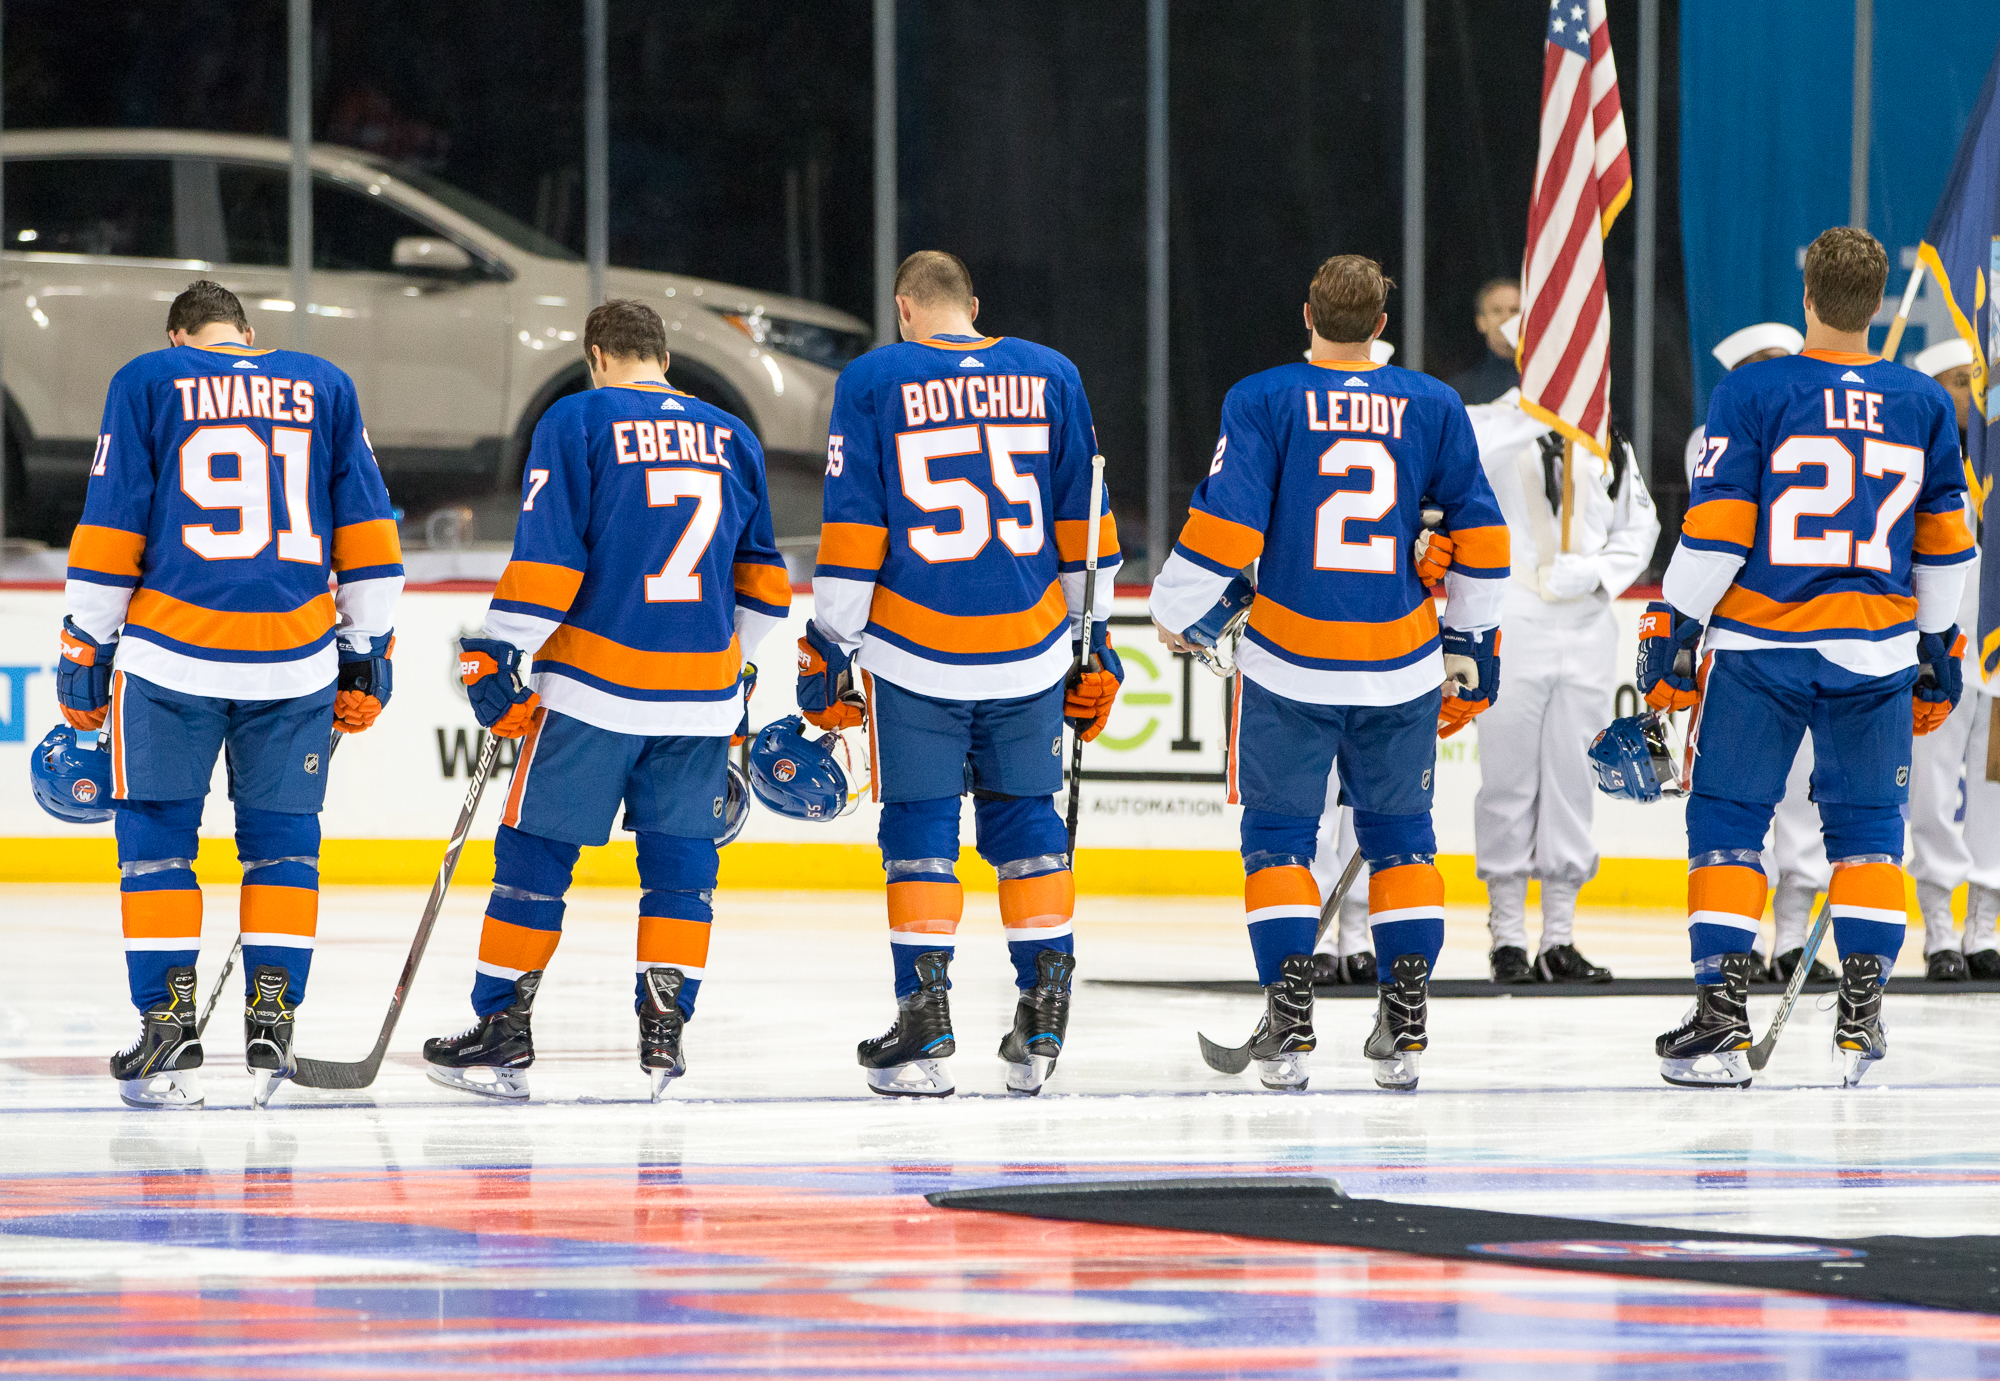 Islanders Devils Preseason Game Barclays Center Brooklyn Sept 25 2017 Photo By Kevin Schultz Schultzimages